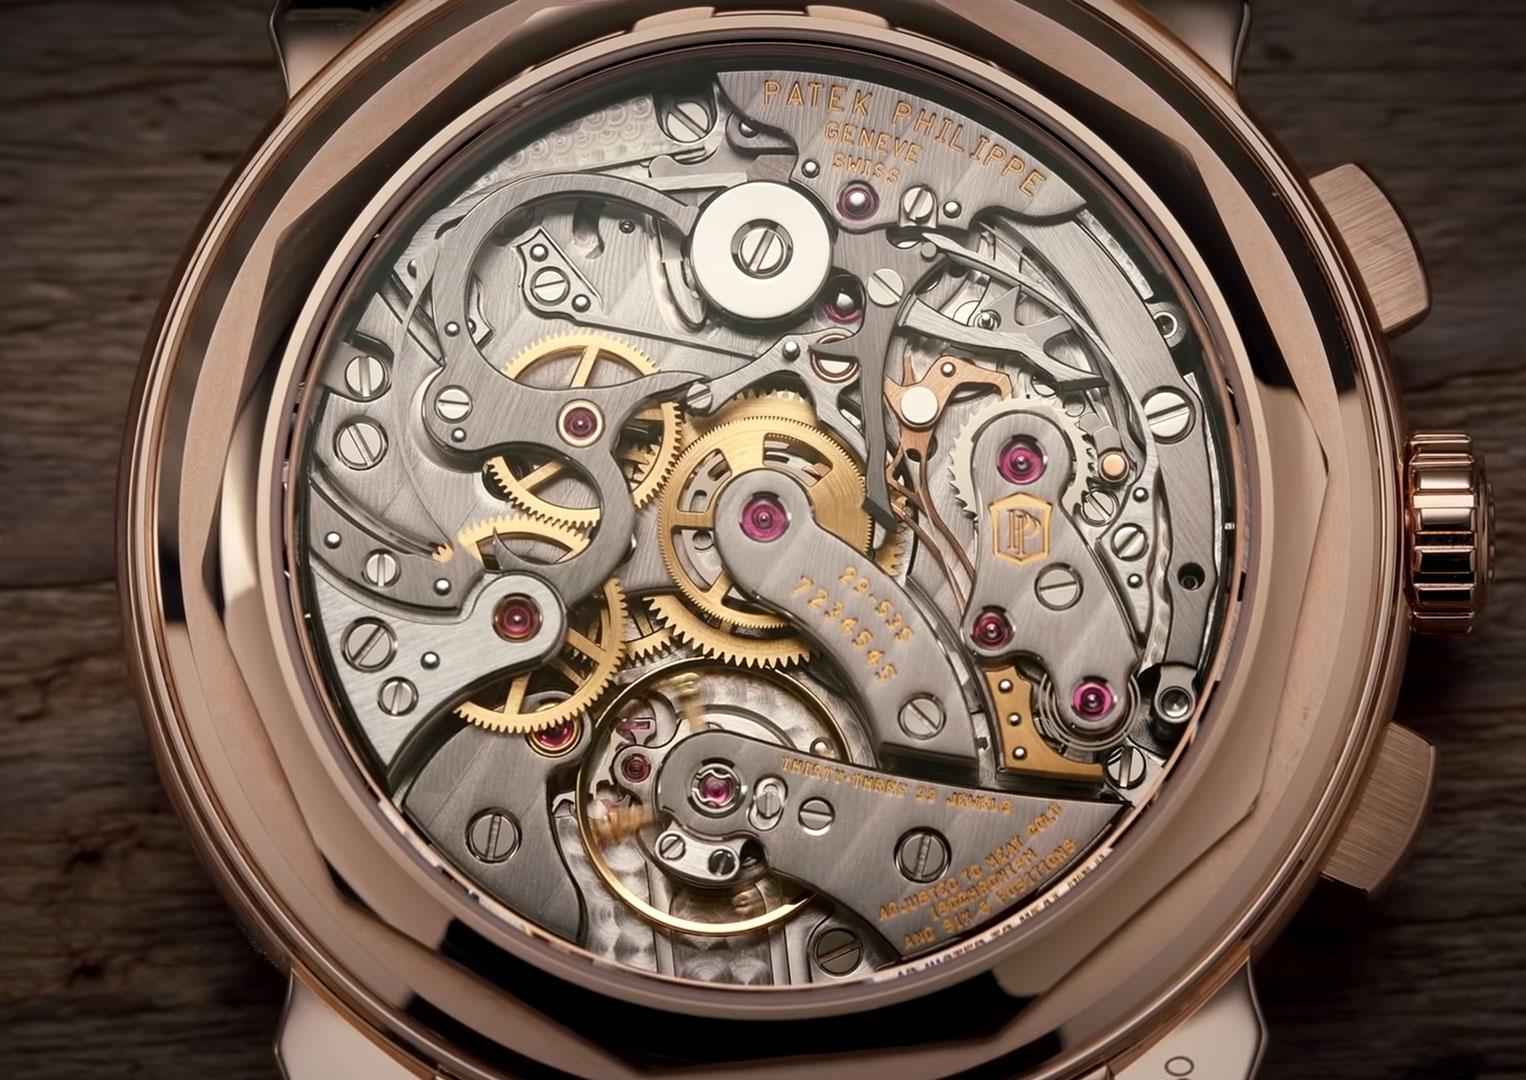 Patek Philippe, Vacheron Constantin and Audemars Piguet are the best watchmakers in the world